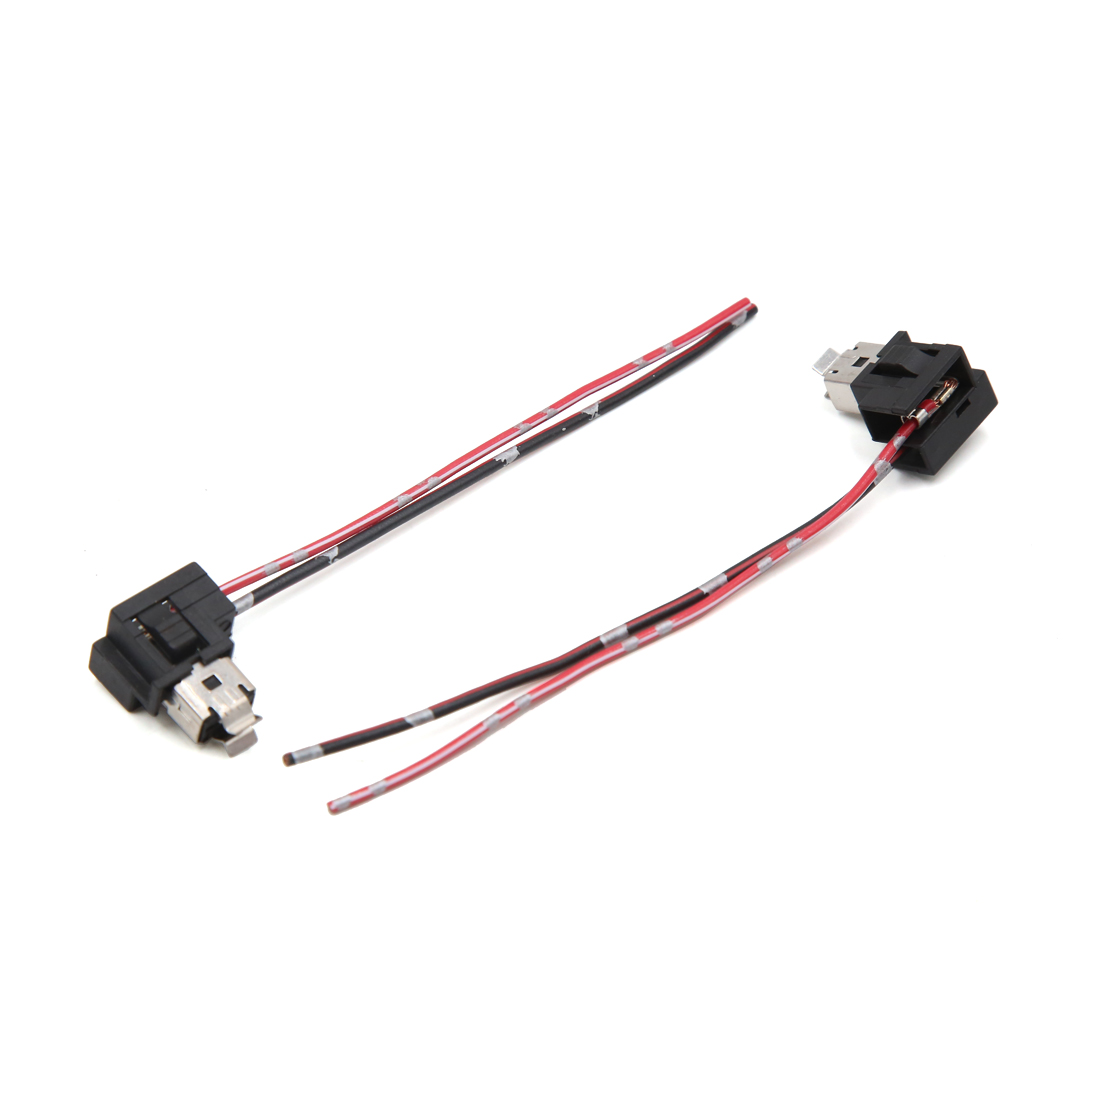 hight resolution of 2pcs h1 dc 12v car bulb holder light socket headlight connector wire harness